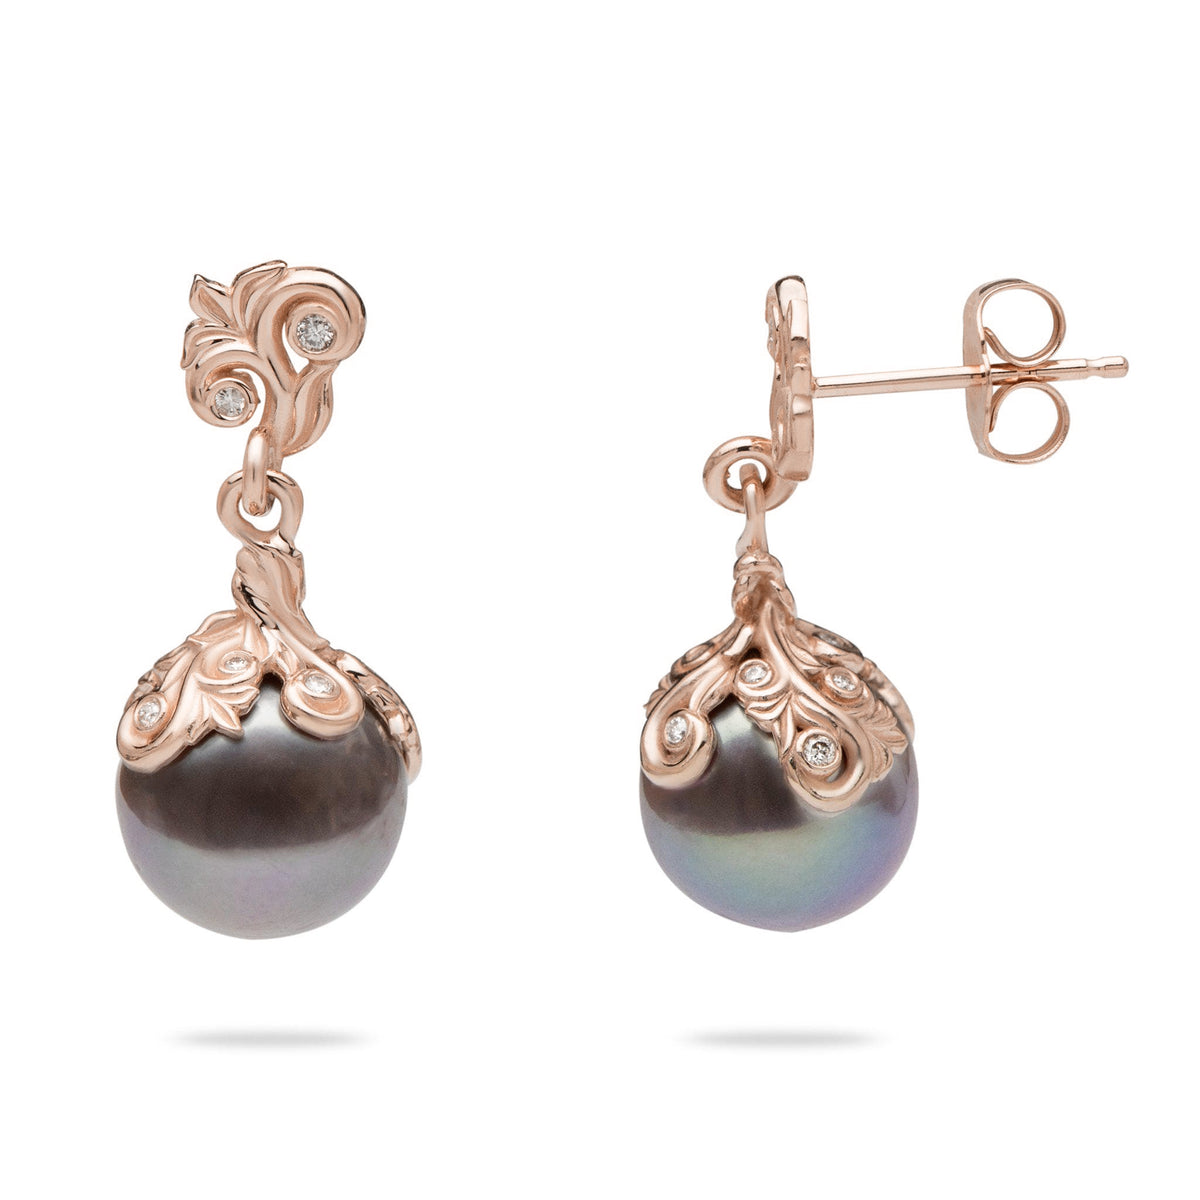 Living Heirloom Lilac Freshwater Pearl Earrings in 14K Rose Gold with Diamonds